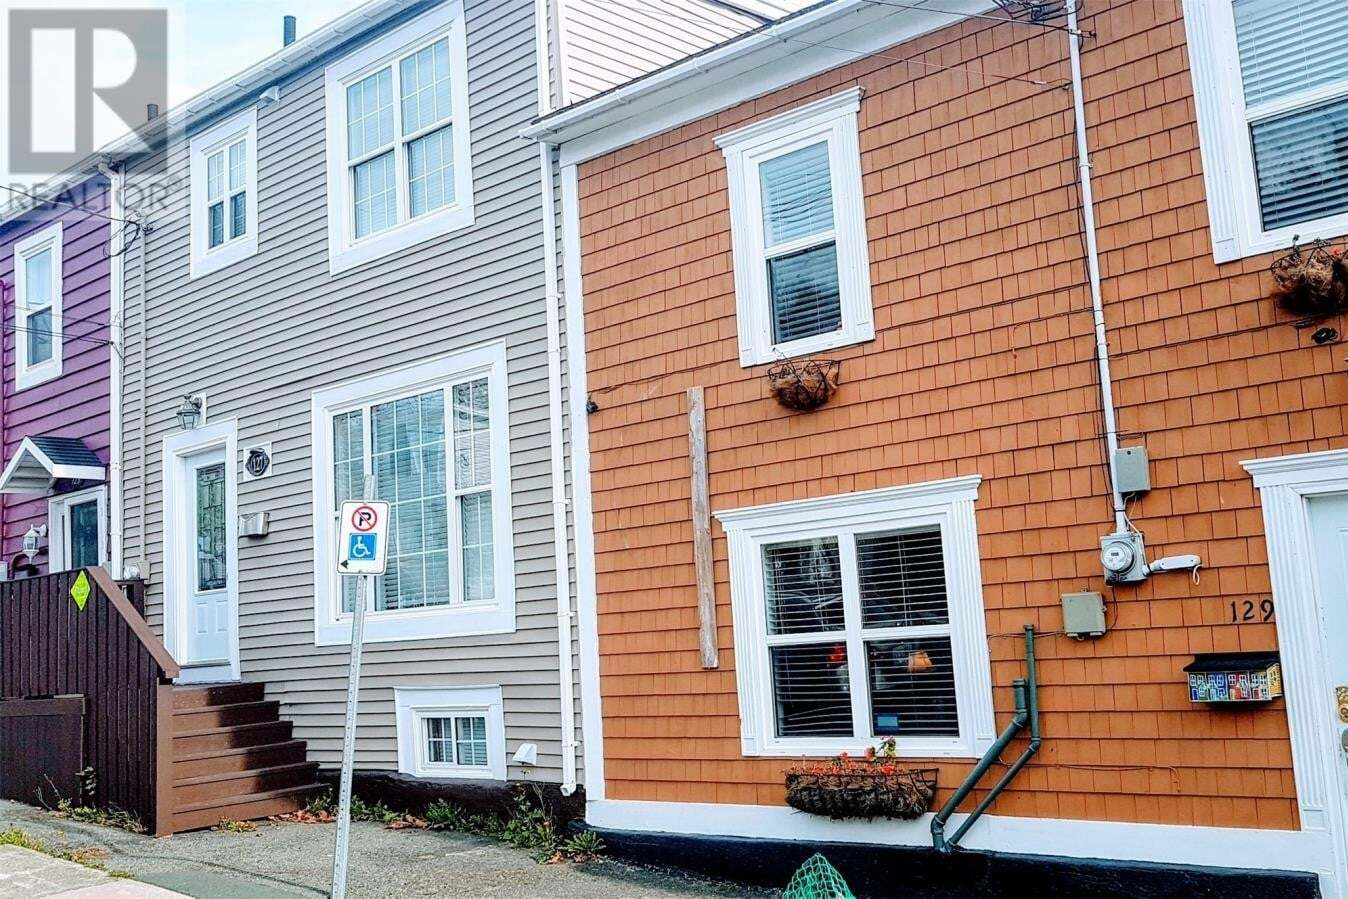 House for sale at 129 Cabot St St. John's Newfoundland - MLS: 1222657